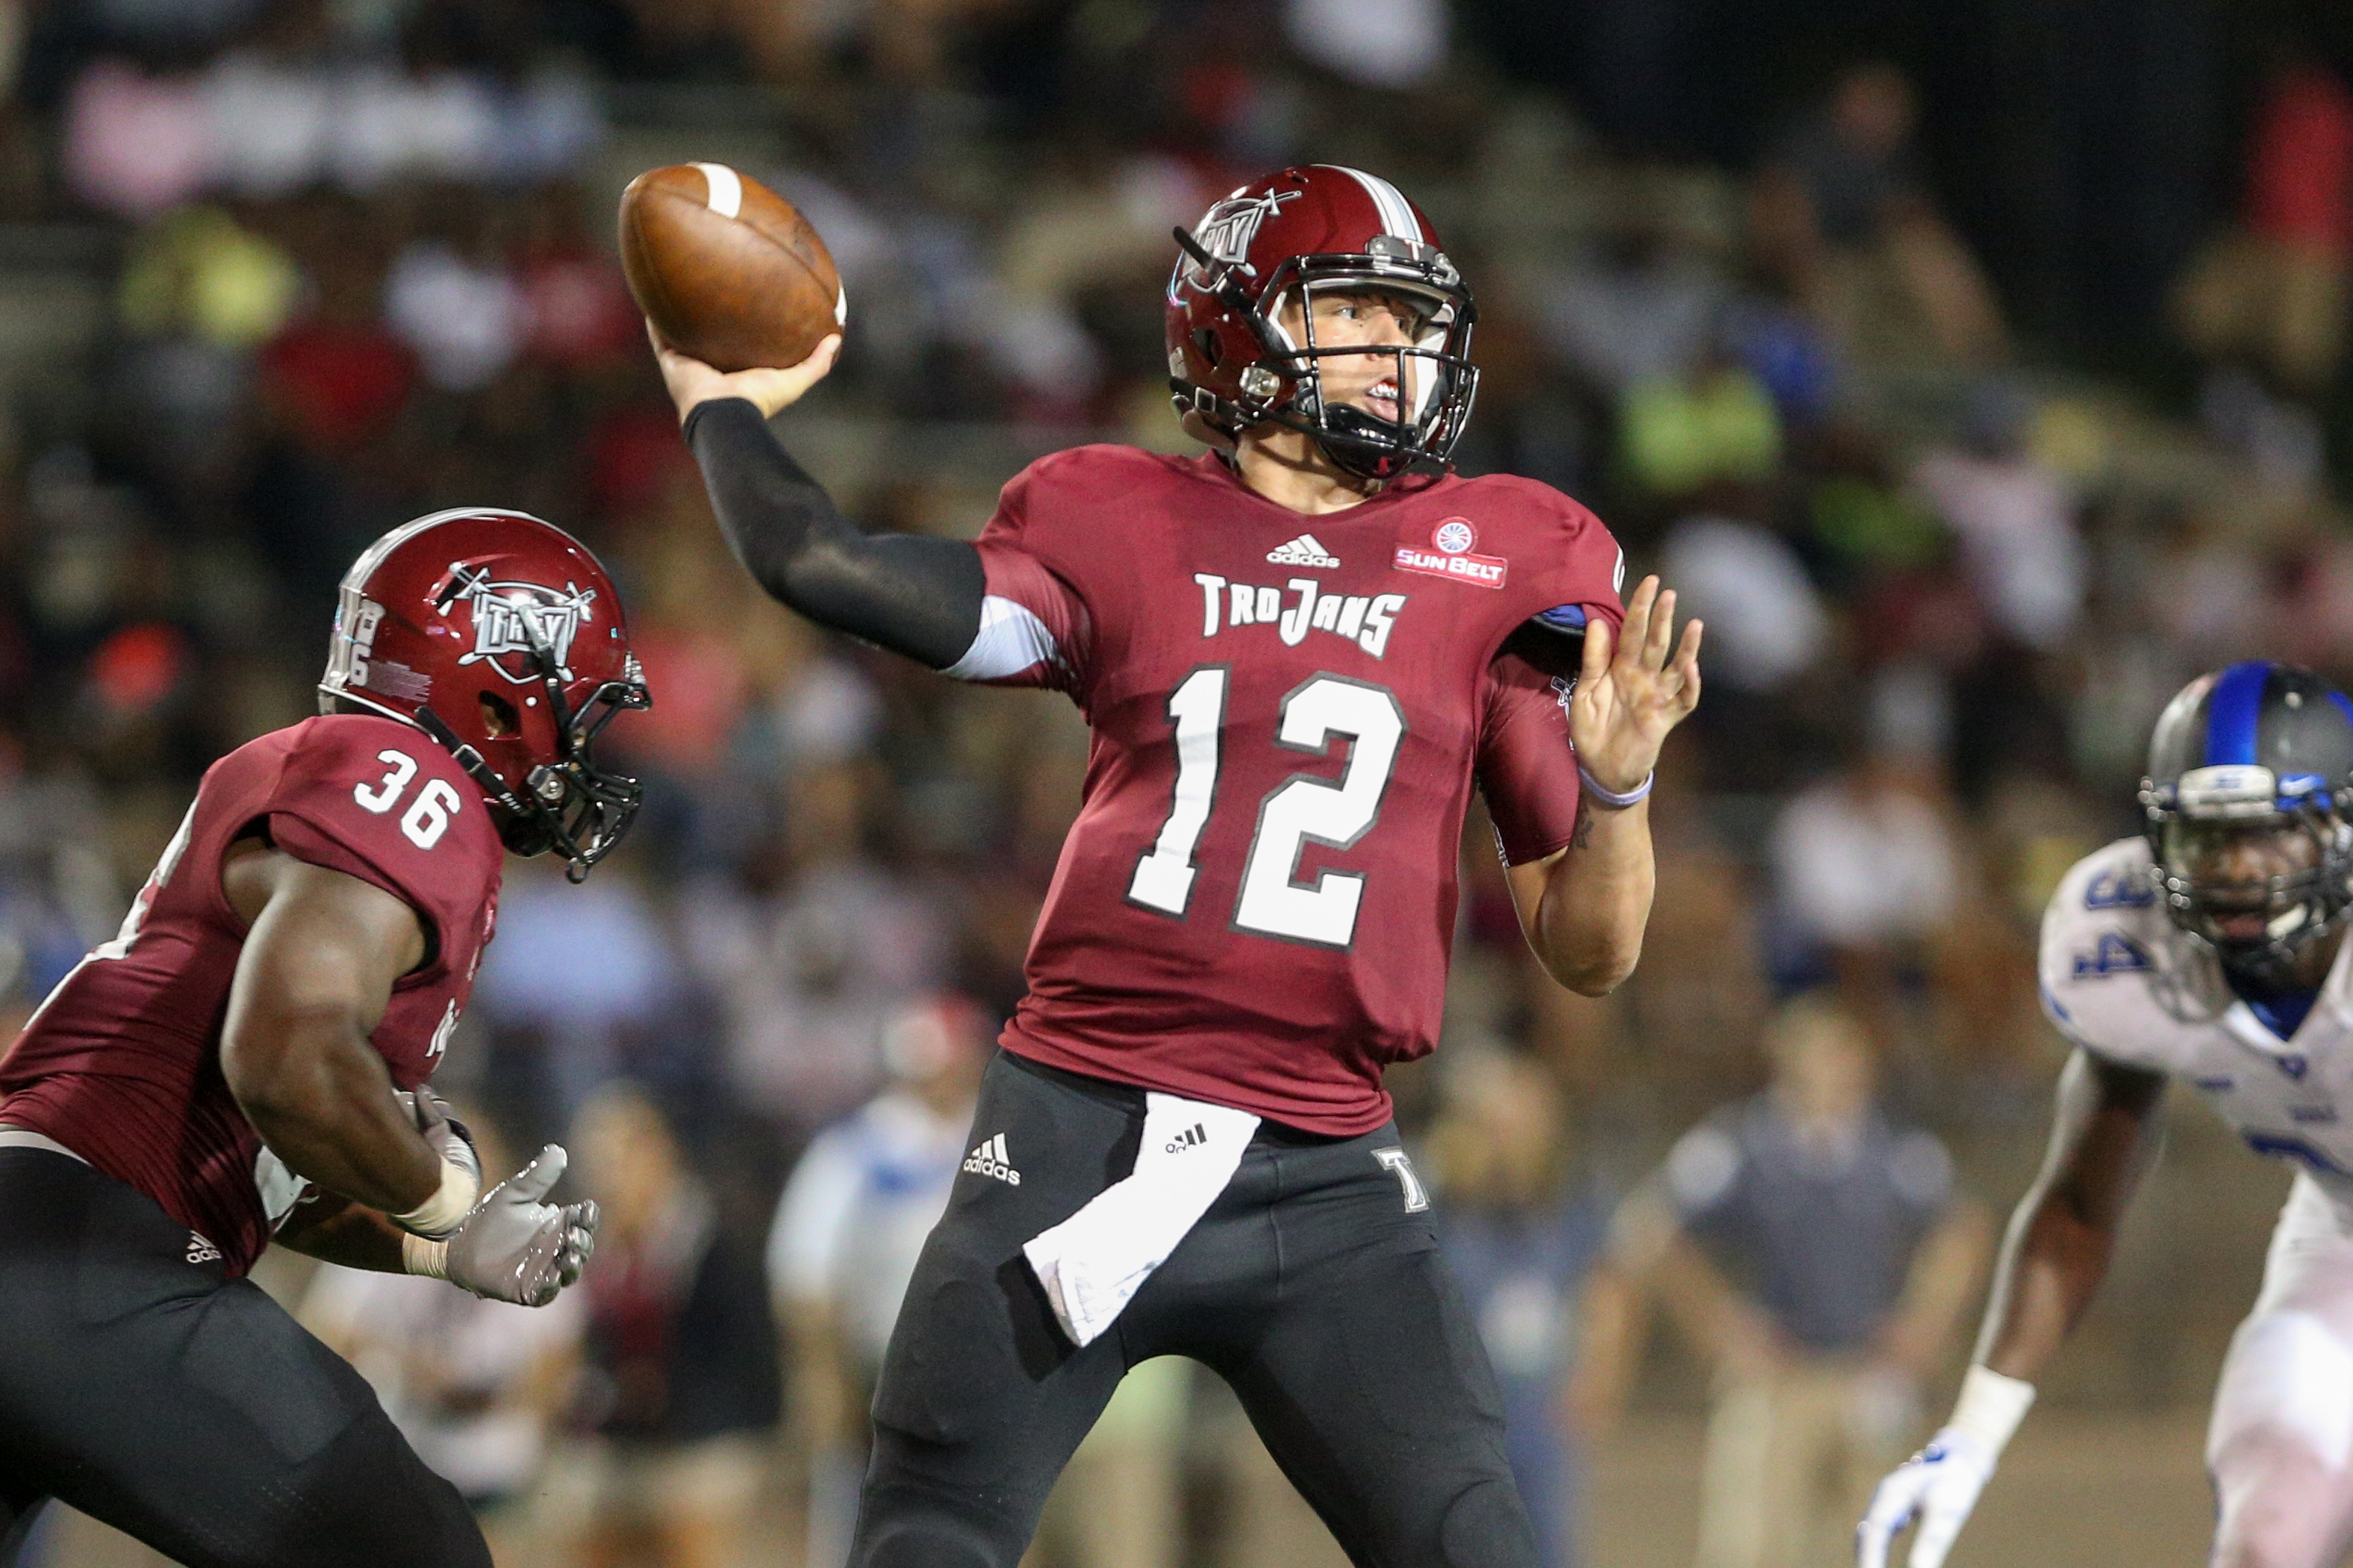 Get the latest Troy Trojans news scores stats standings rumors and more from ESPN